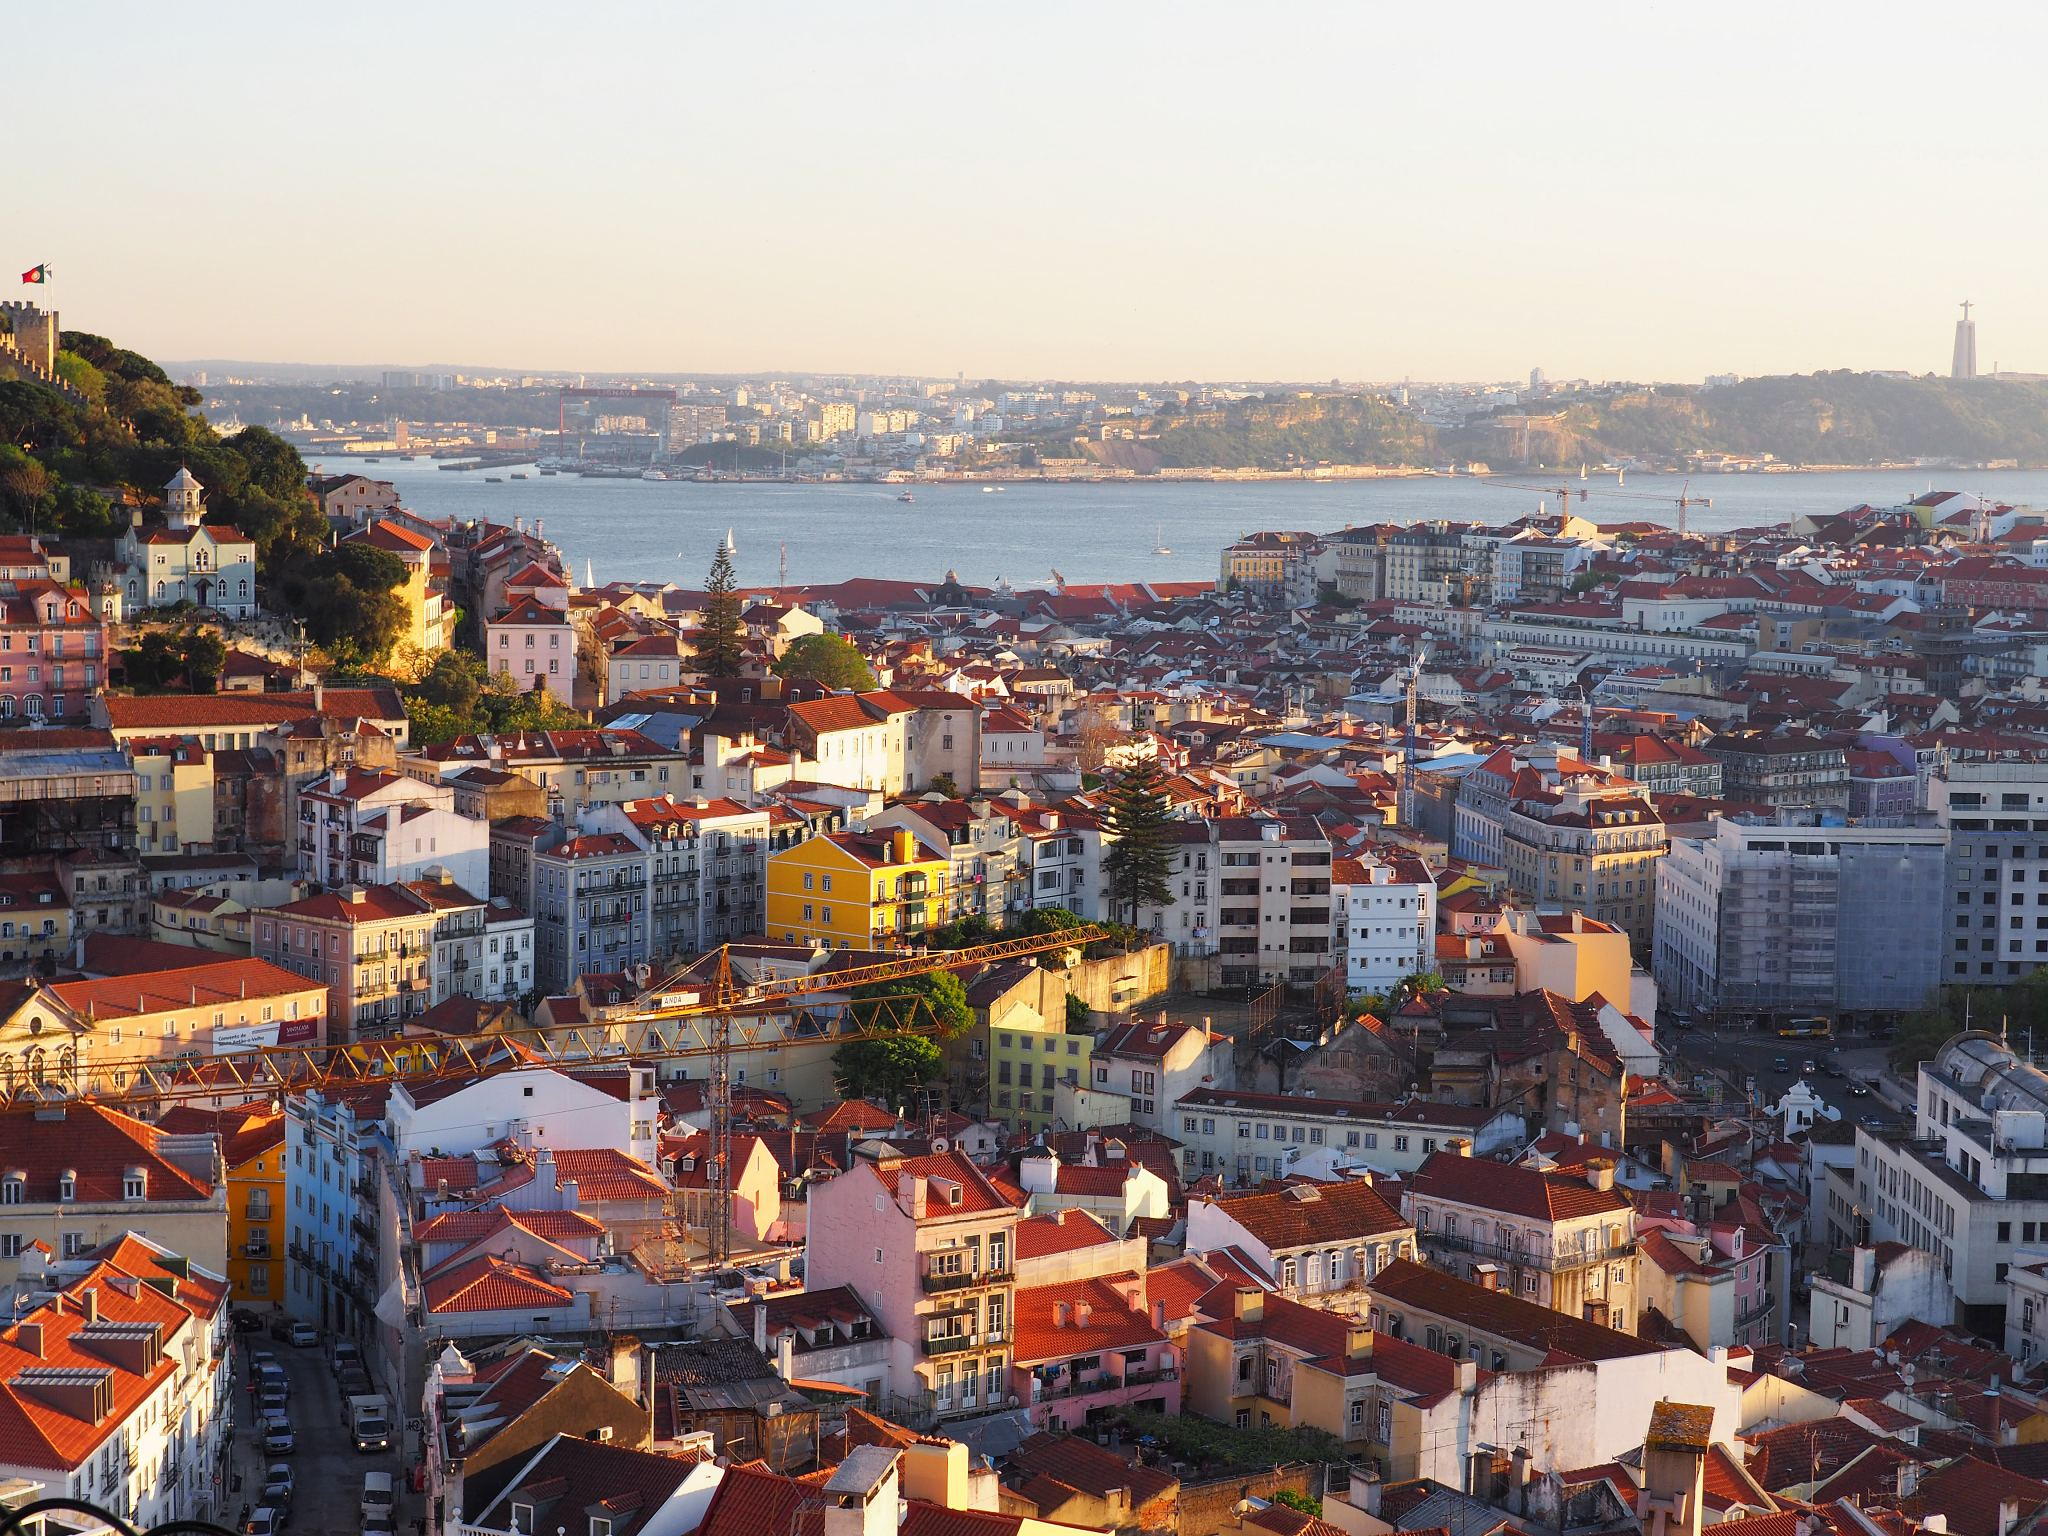 Capital of Portugal, Lisbon